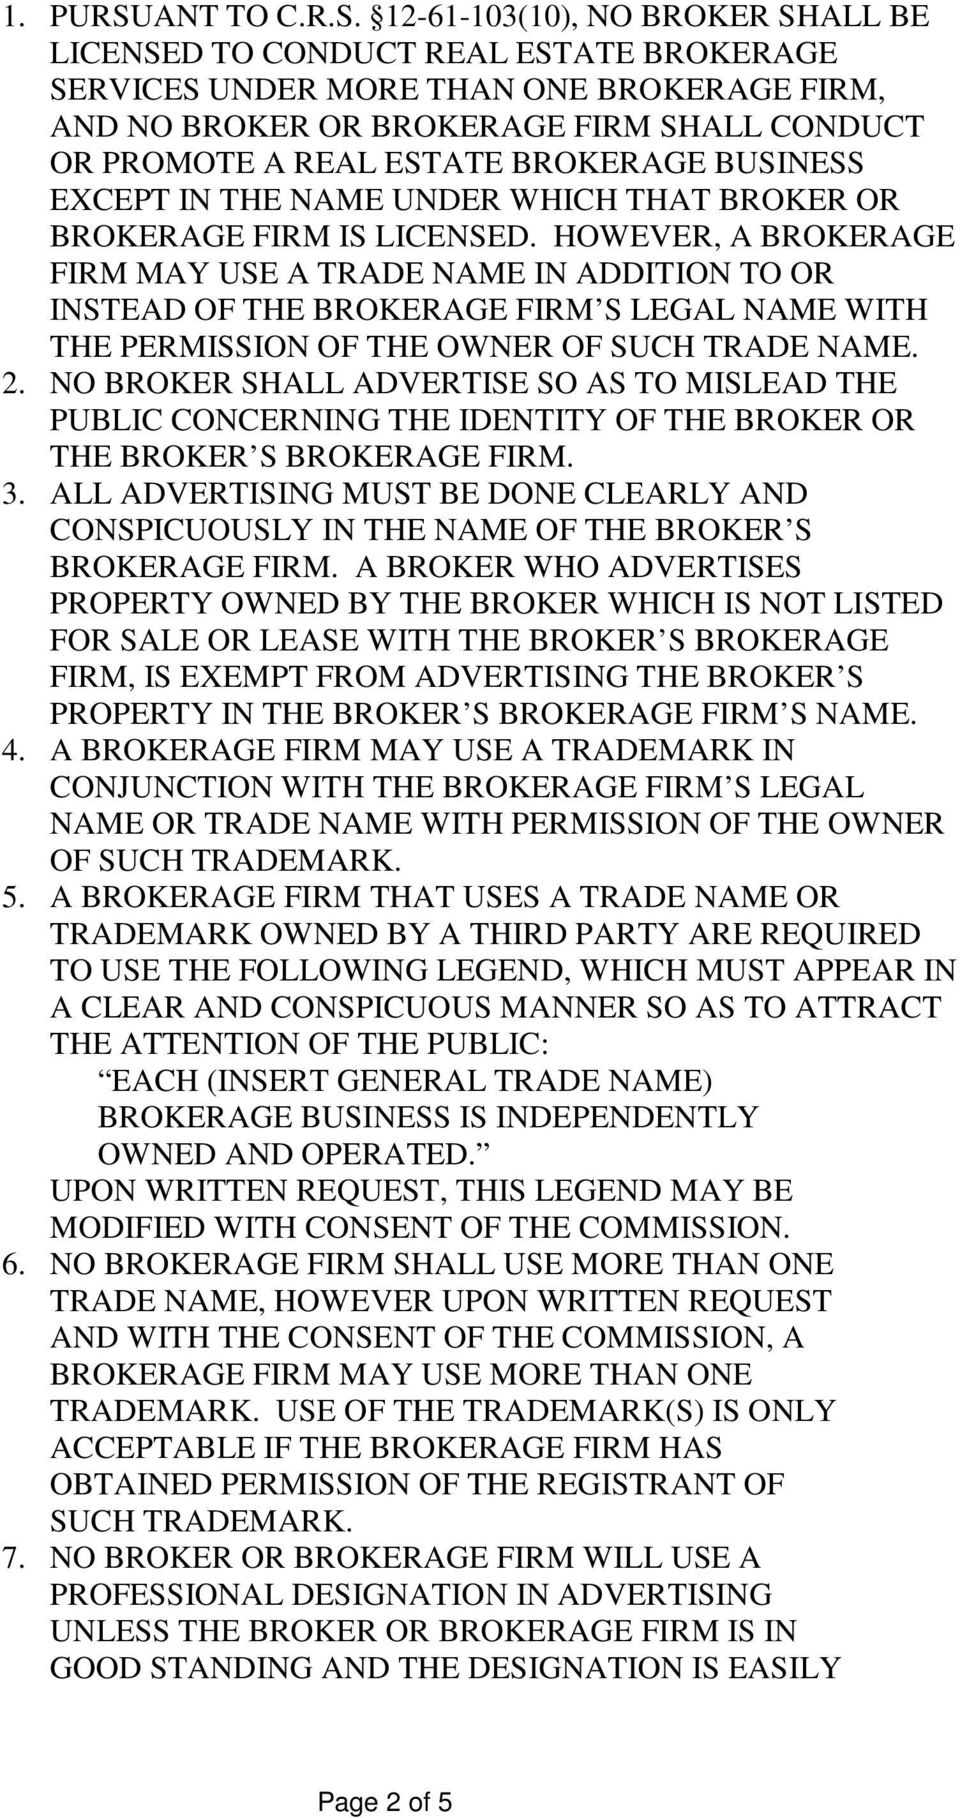 12-61-103(10), NO BROKER SHALL BE LICENSED TO CONDUCT REAL ESTATE BROKERAGE SERVICES UNDER MORE THAN ONE BROKERAGE FIRM, AND NO BROKER OR BROKERAGE FIRM SHALL CONDUCT OR PROMOTE A REAL ESTATE